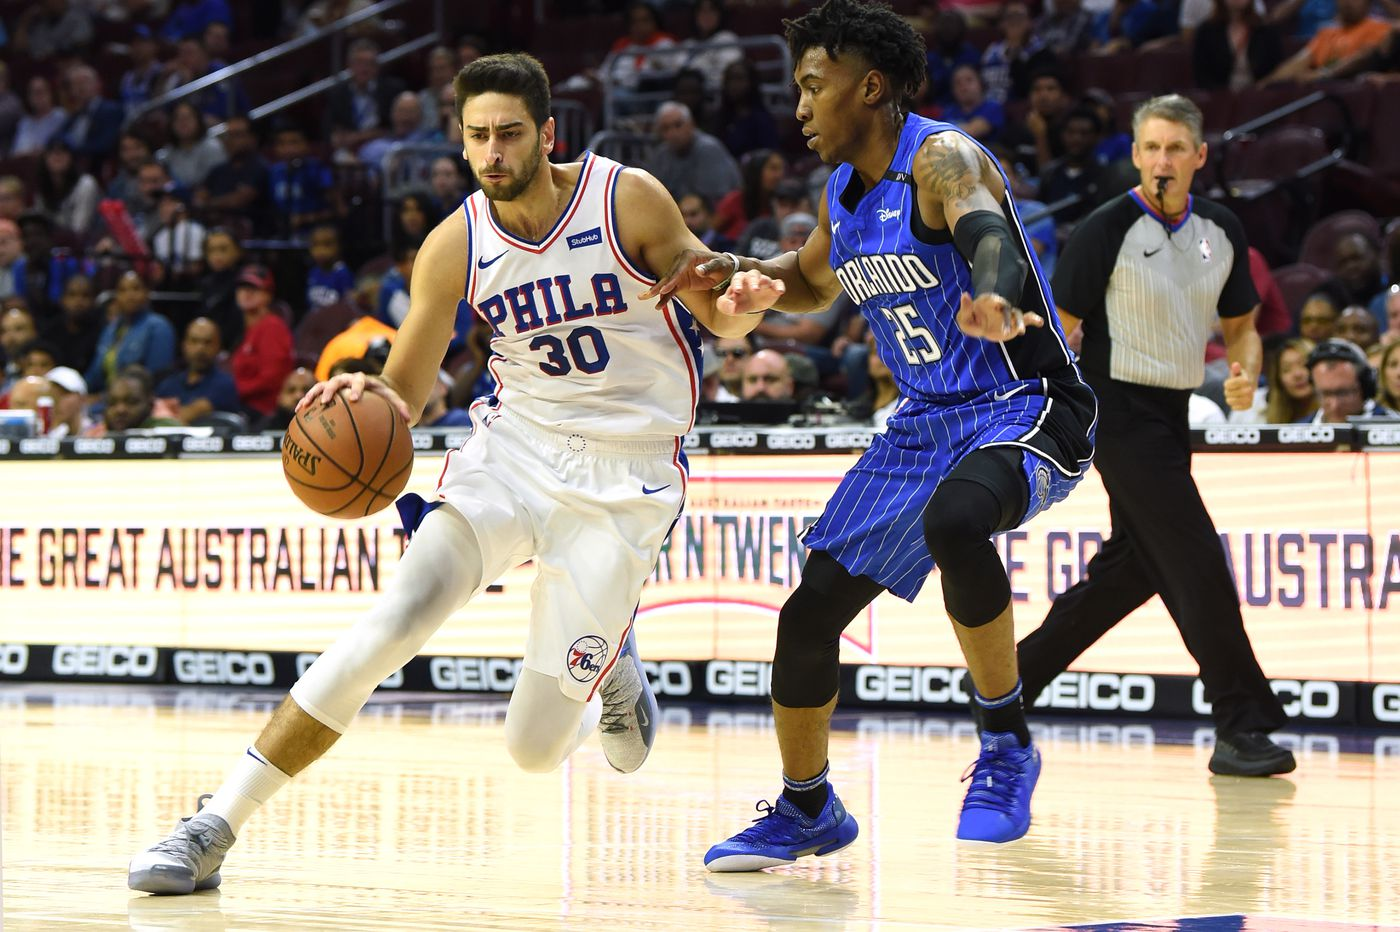 Sixers podcast: Discussing Furkan Korkmaz, franchise legends and more